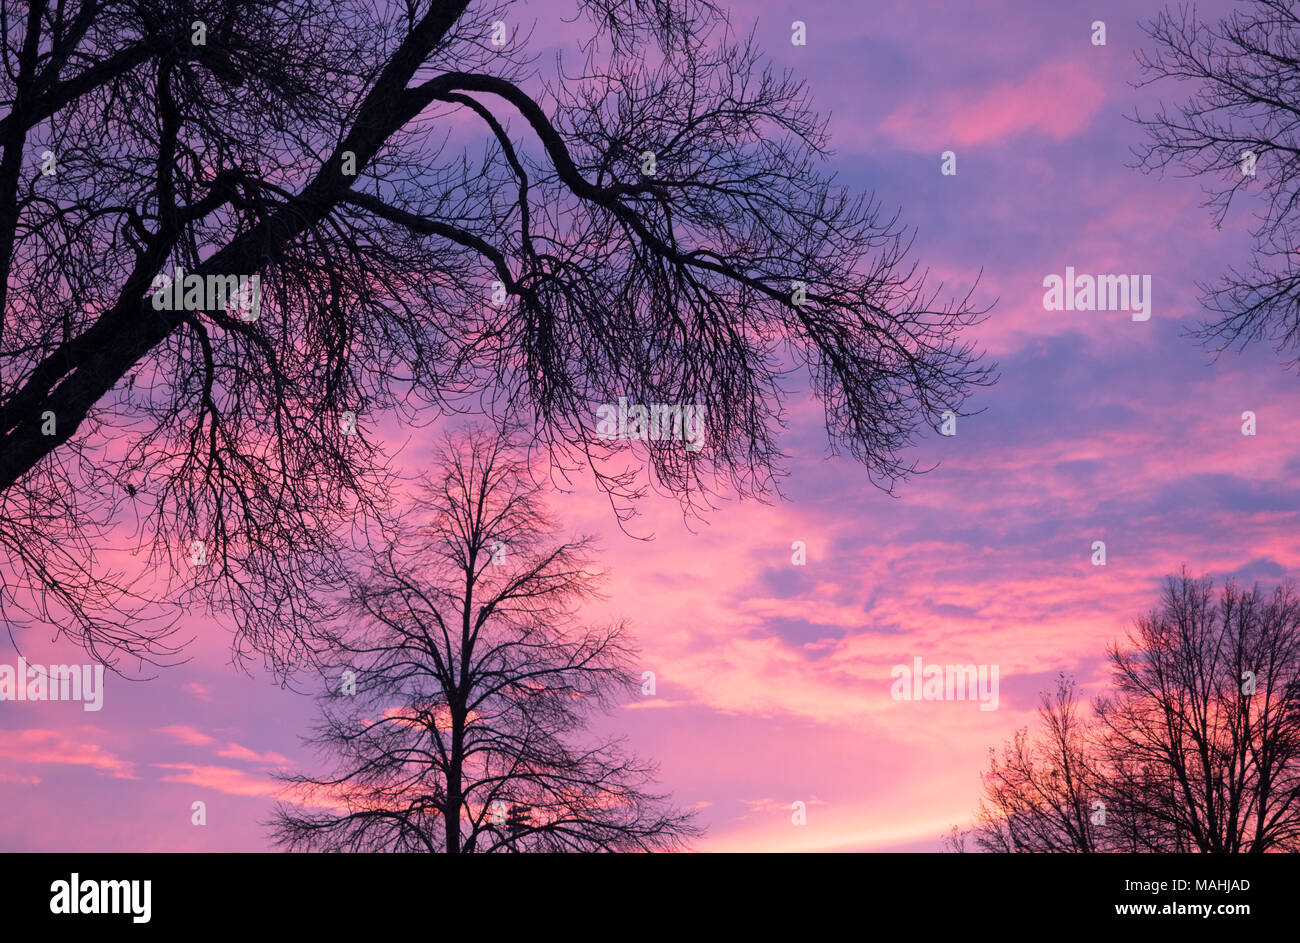 A brilliant purple, peach, coral, pink and lavender sunrise with deciduous trees in silhouette in the foreground. - Stock Image